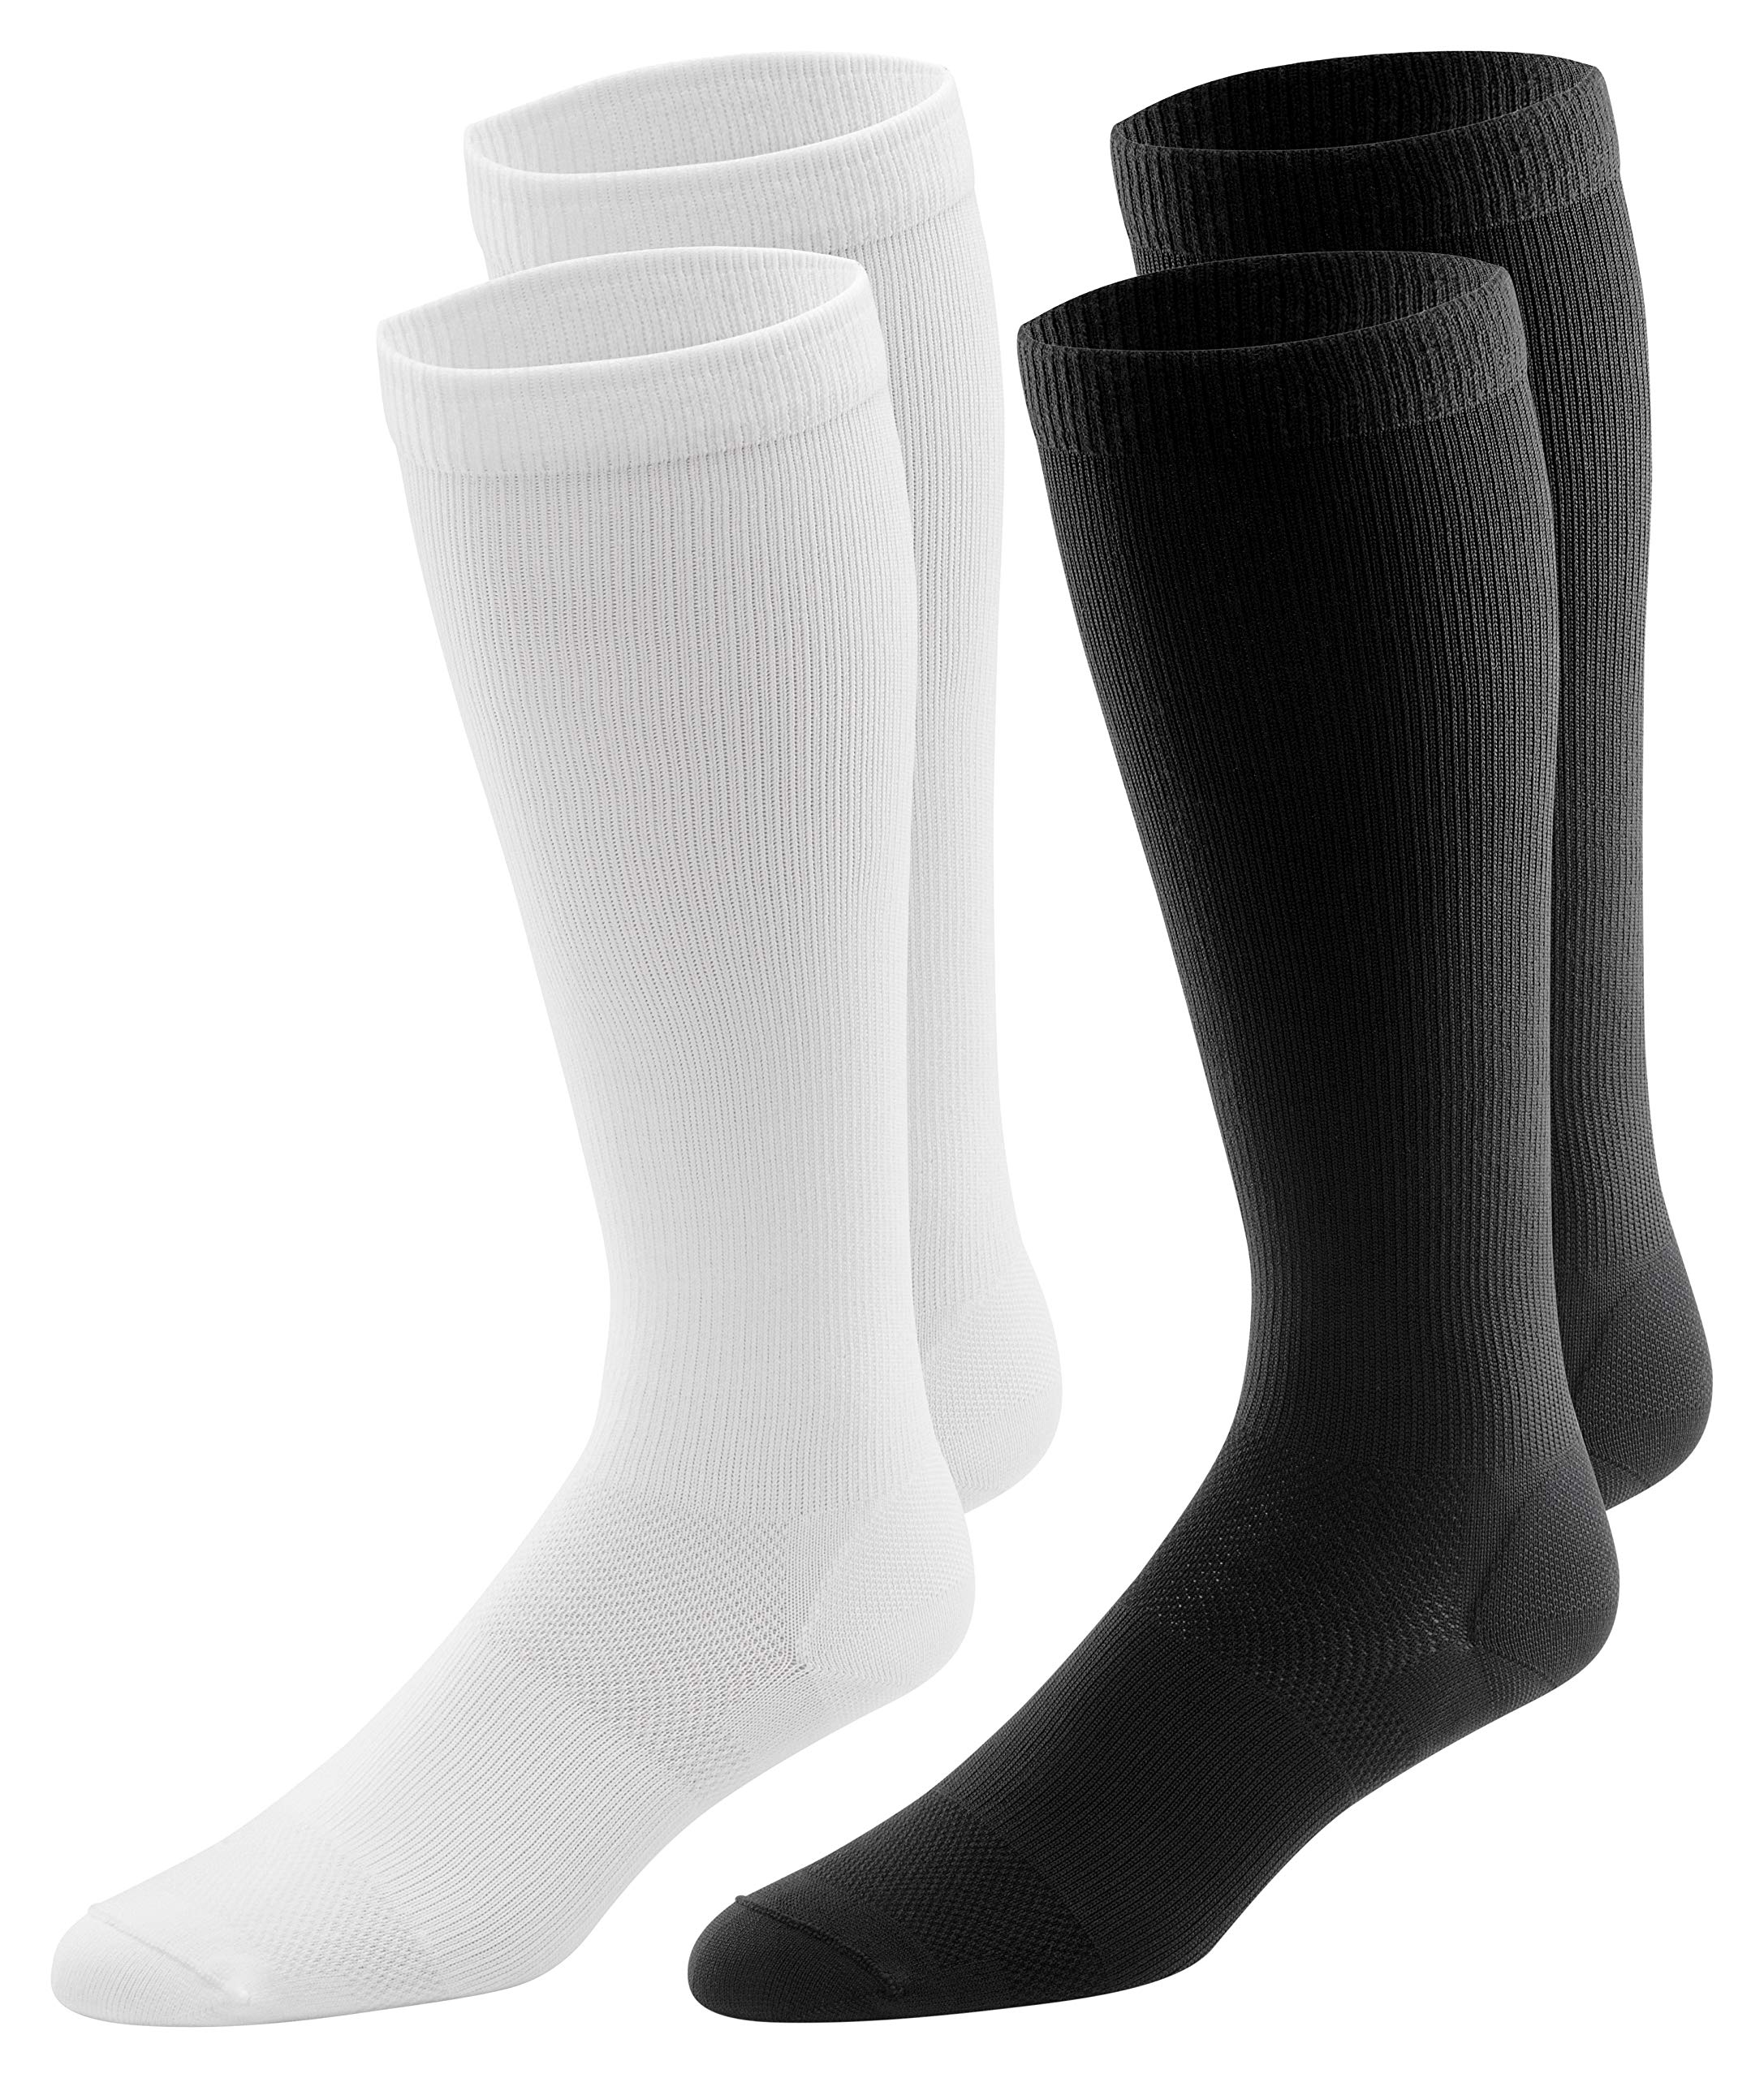 2 Pack Fox River Diabetic Fatigue Fighter Adult Ultra-lightweight Over-the-calf Socks